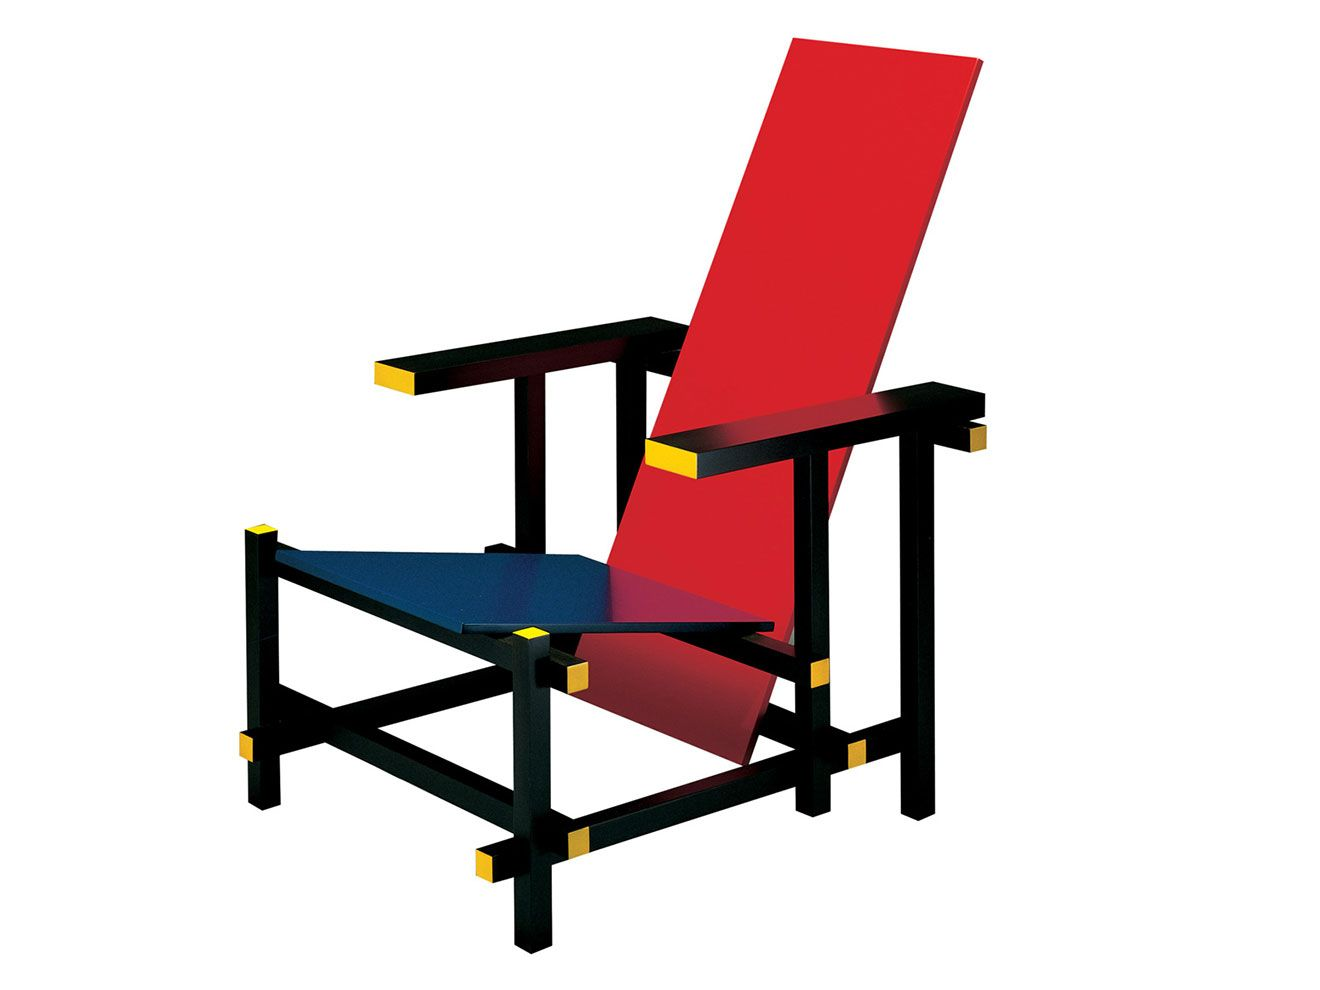 Domani com media catalog product c a cassina schroeder1 side table jpg downloader - View This Item And Discover Similar Armchairs For Sale At Armchair Red And Blue Rietveld Cassina Production Number The First 70 Years Of Production